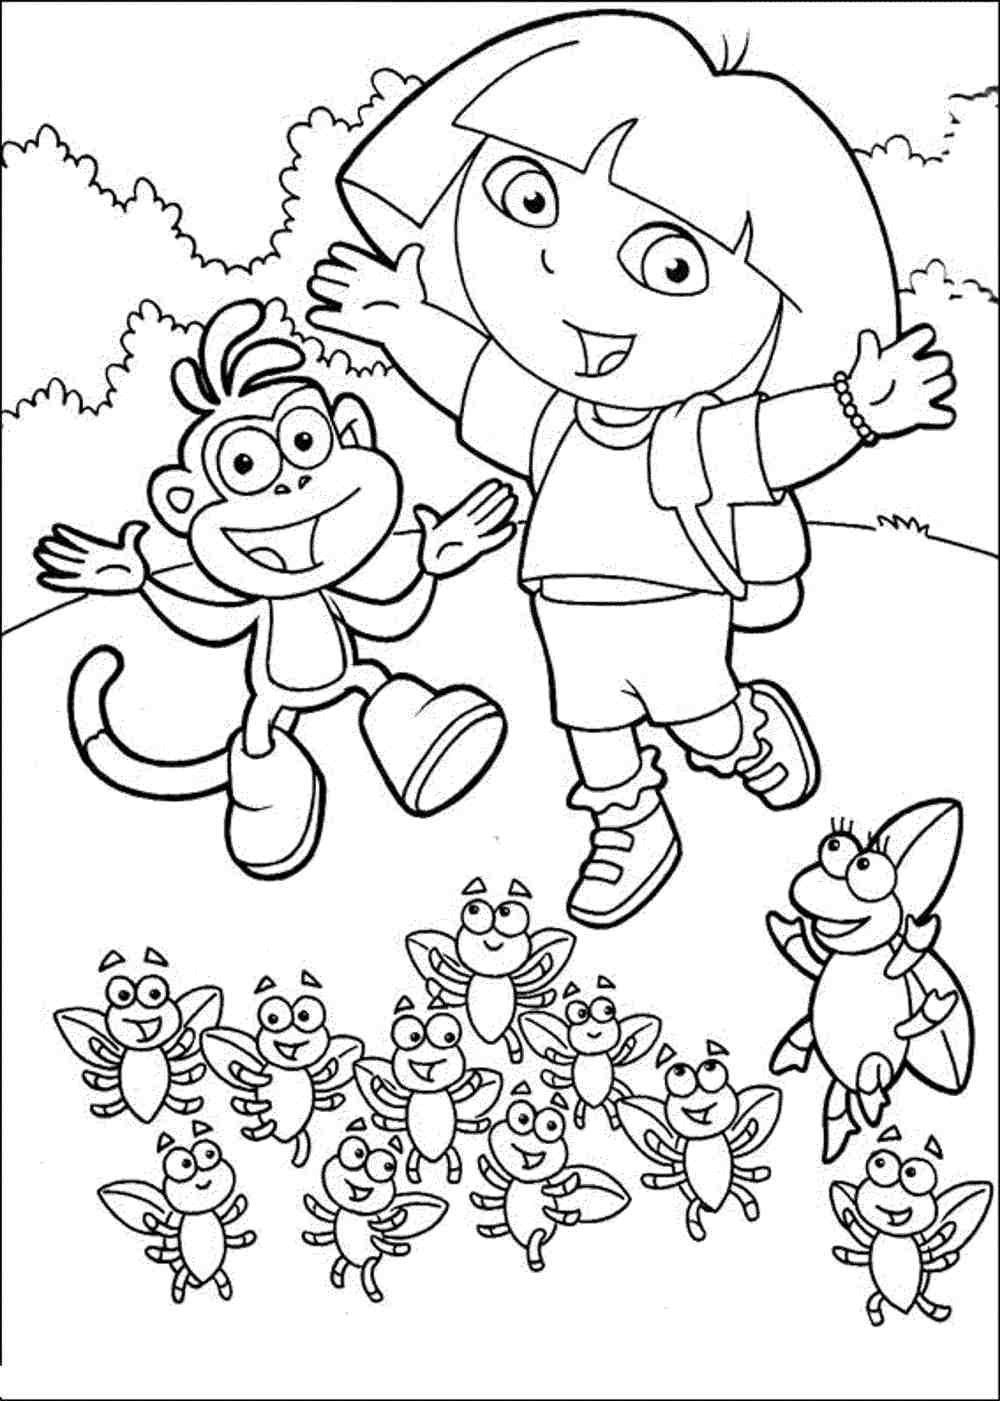 dora color sheets print download dora coloring pages to learn new things dora color sheets 1 1